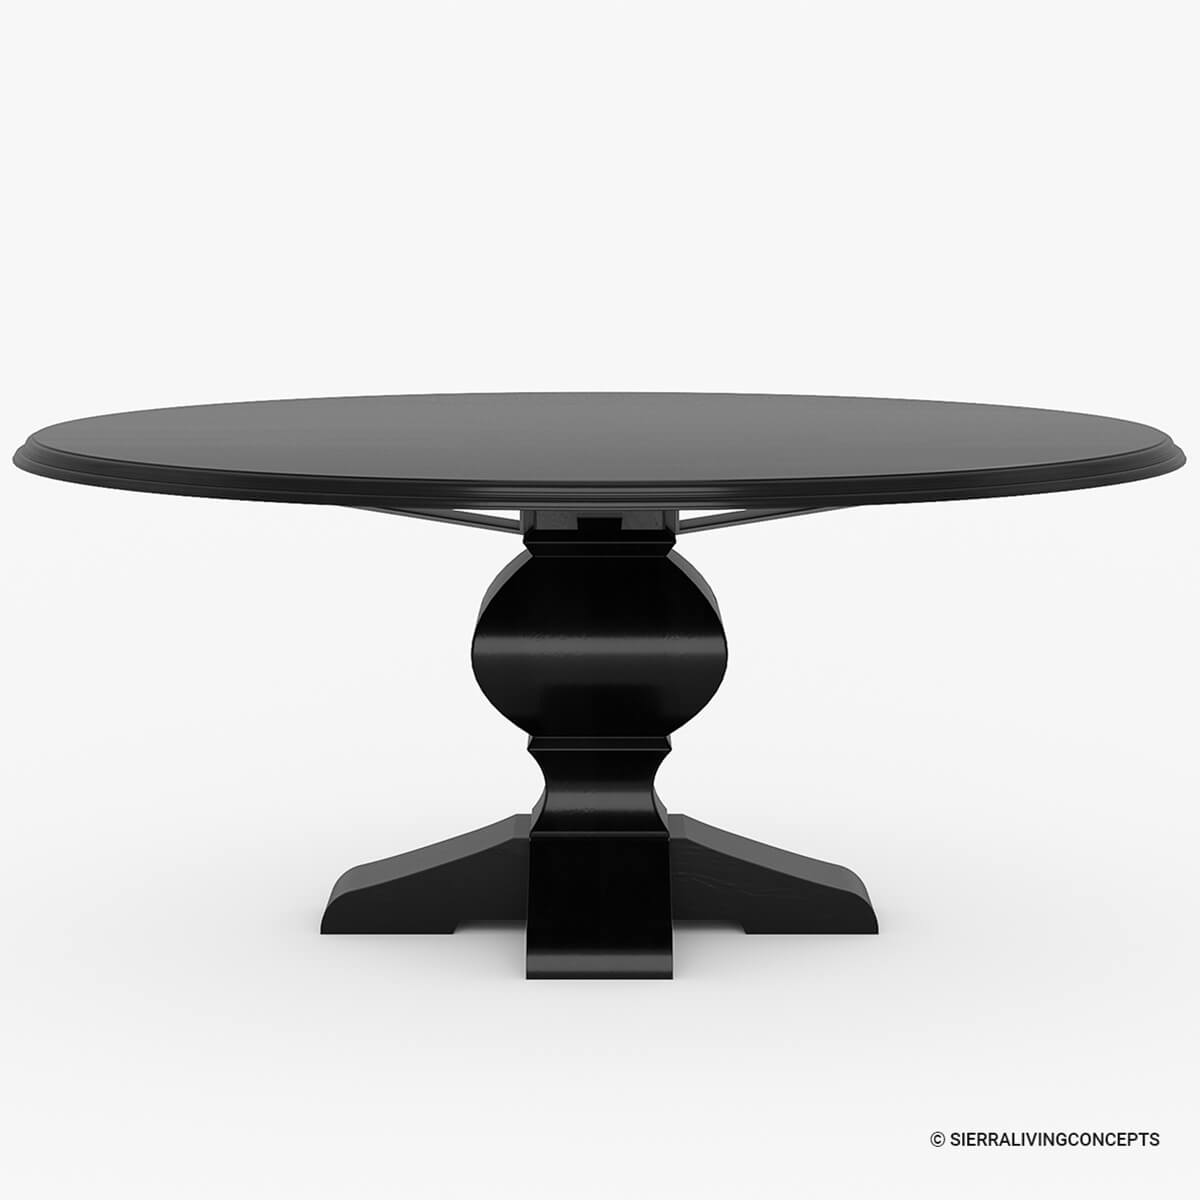 By Room Dining Room Dining Tables Large 84 Round Dining Table For 10 ...